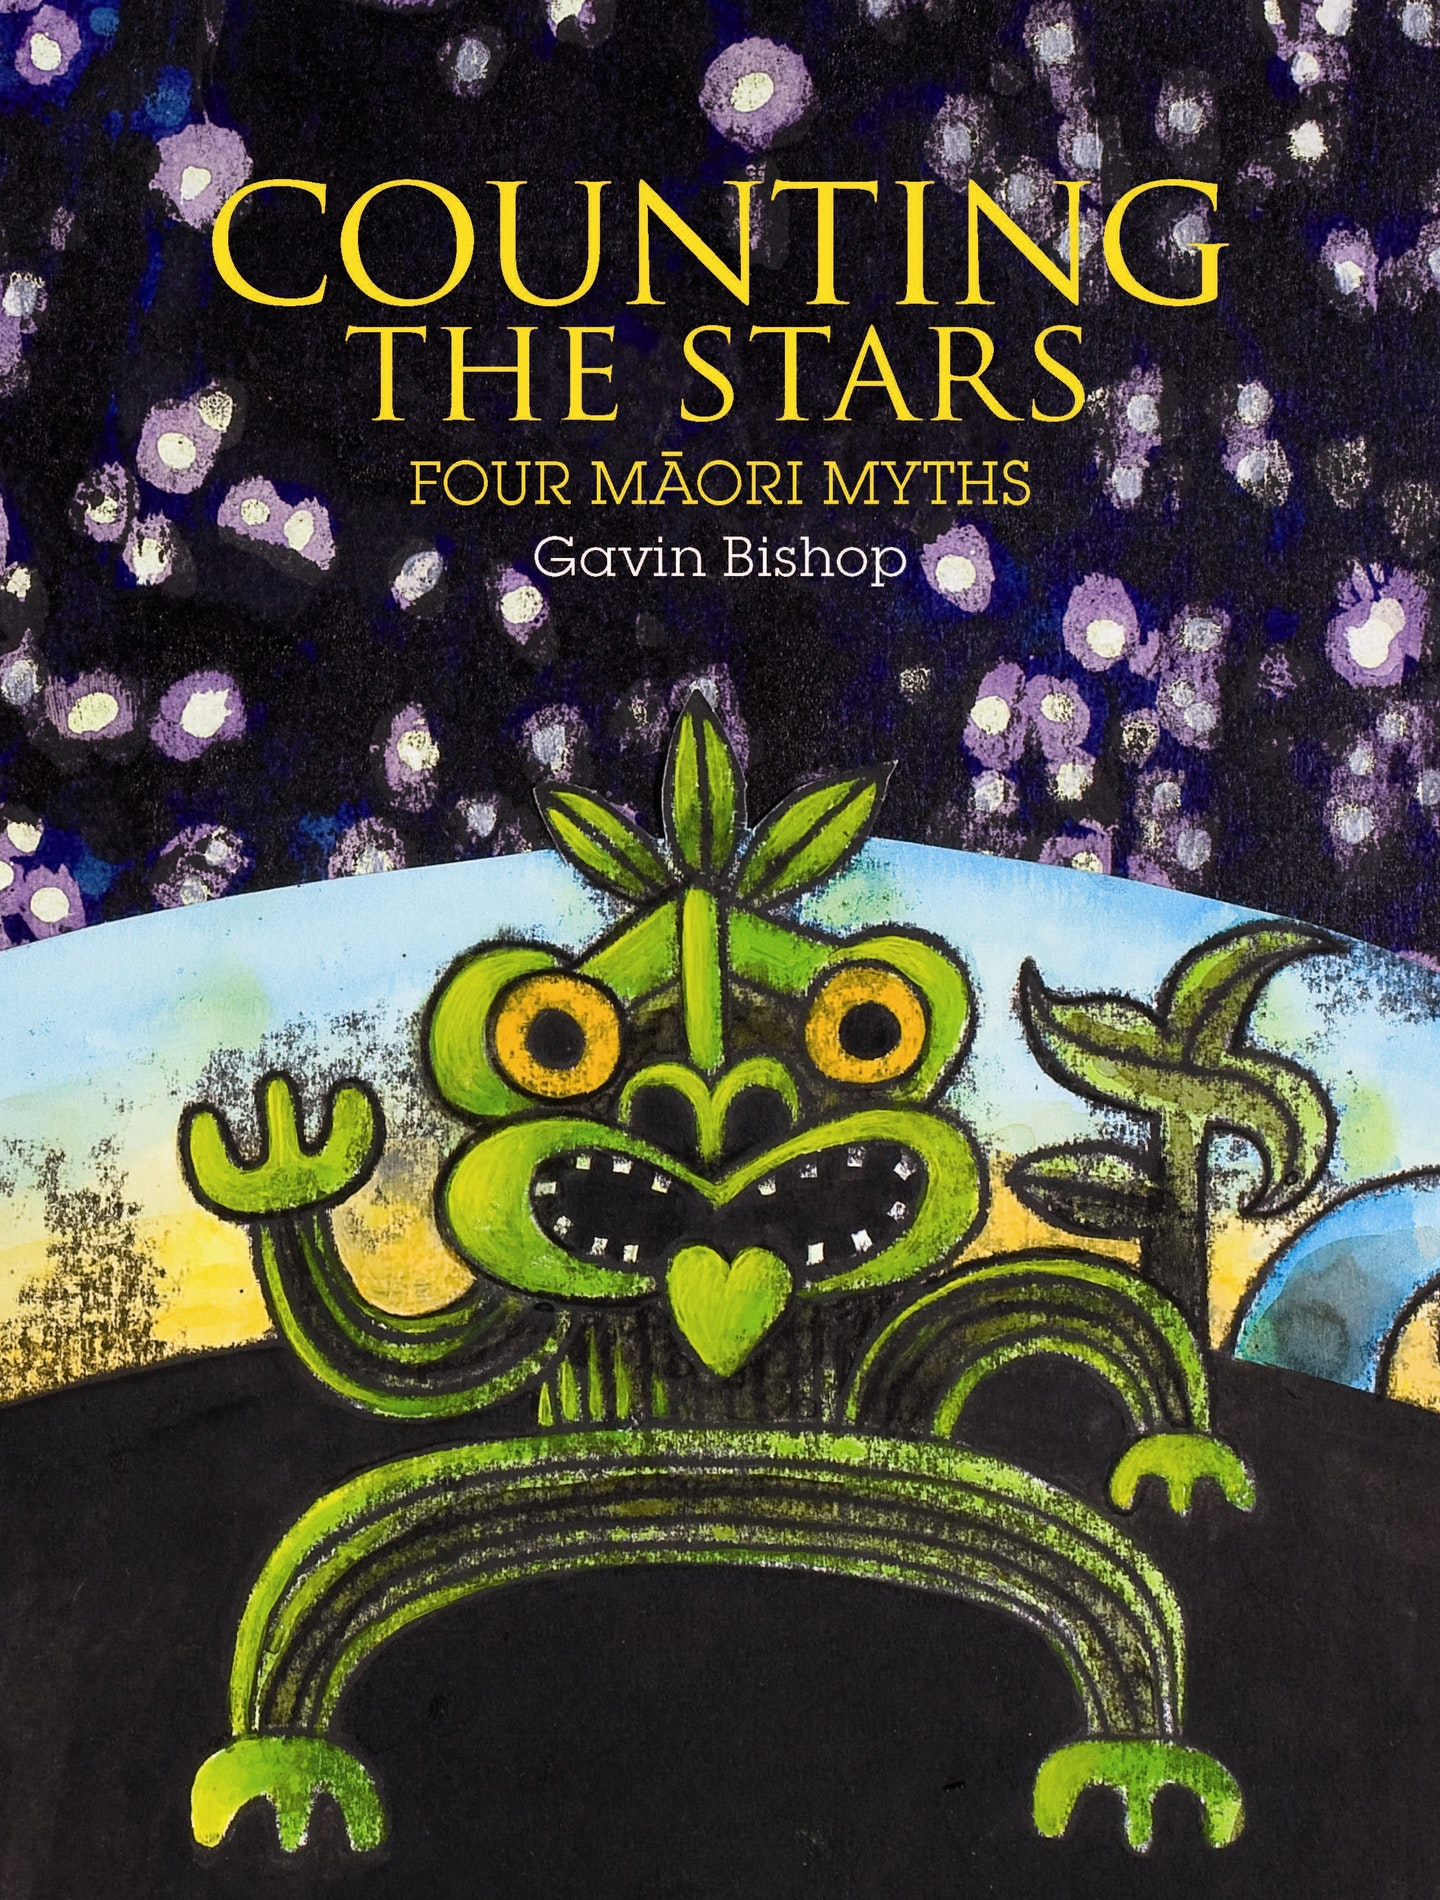 Book Covering Nz : Counting the stars penguin books new zealand